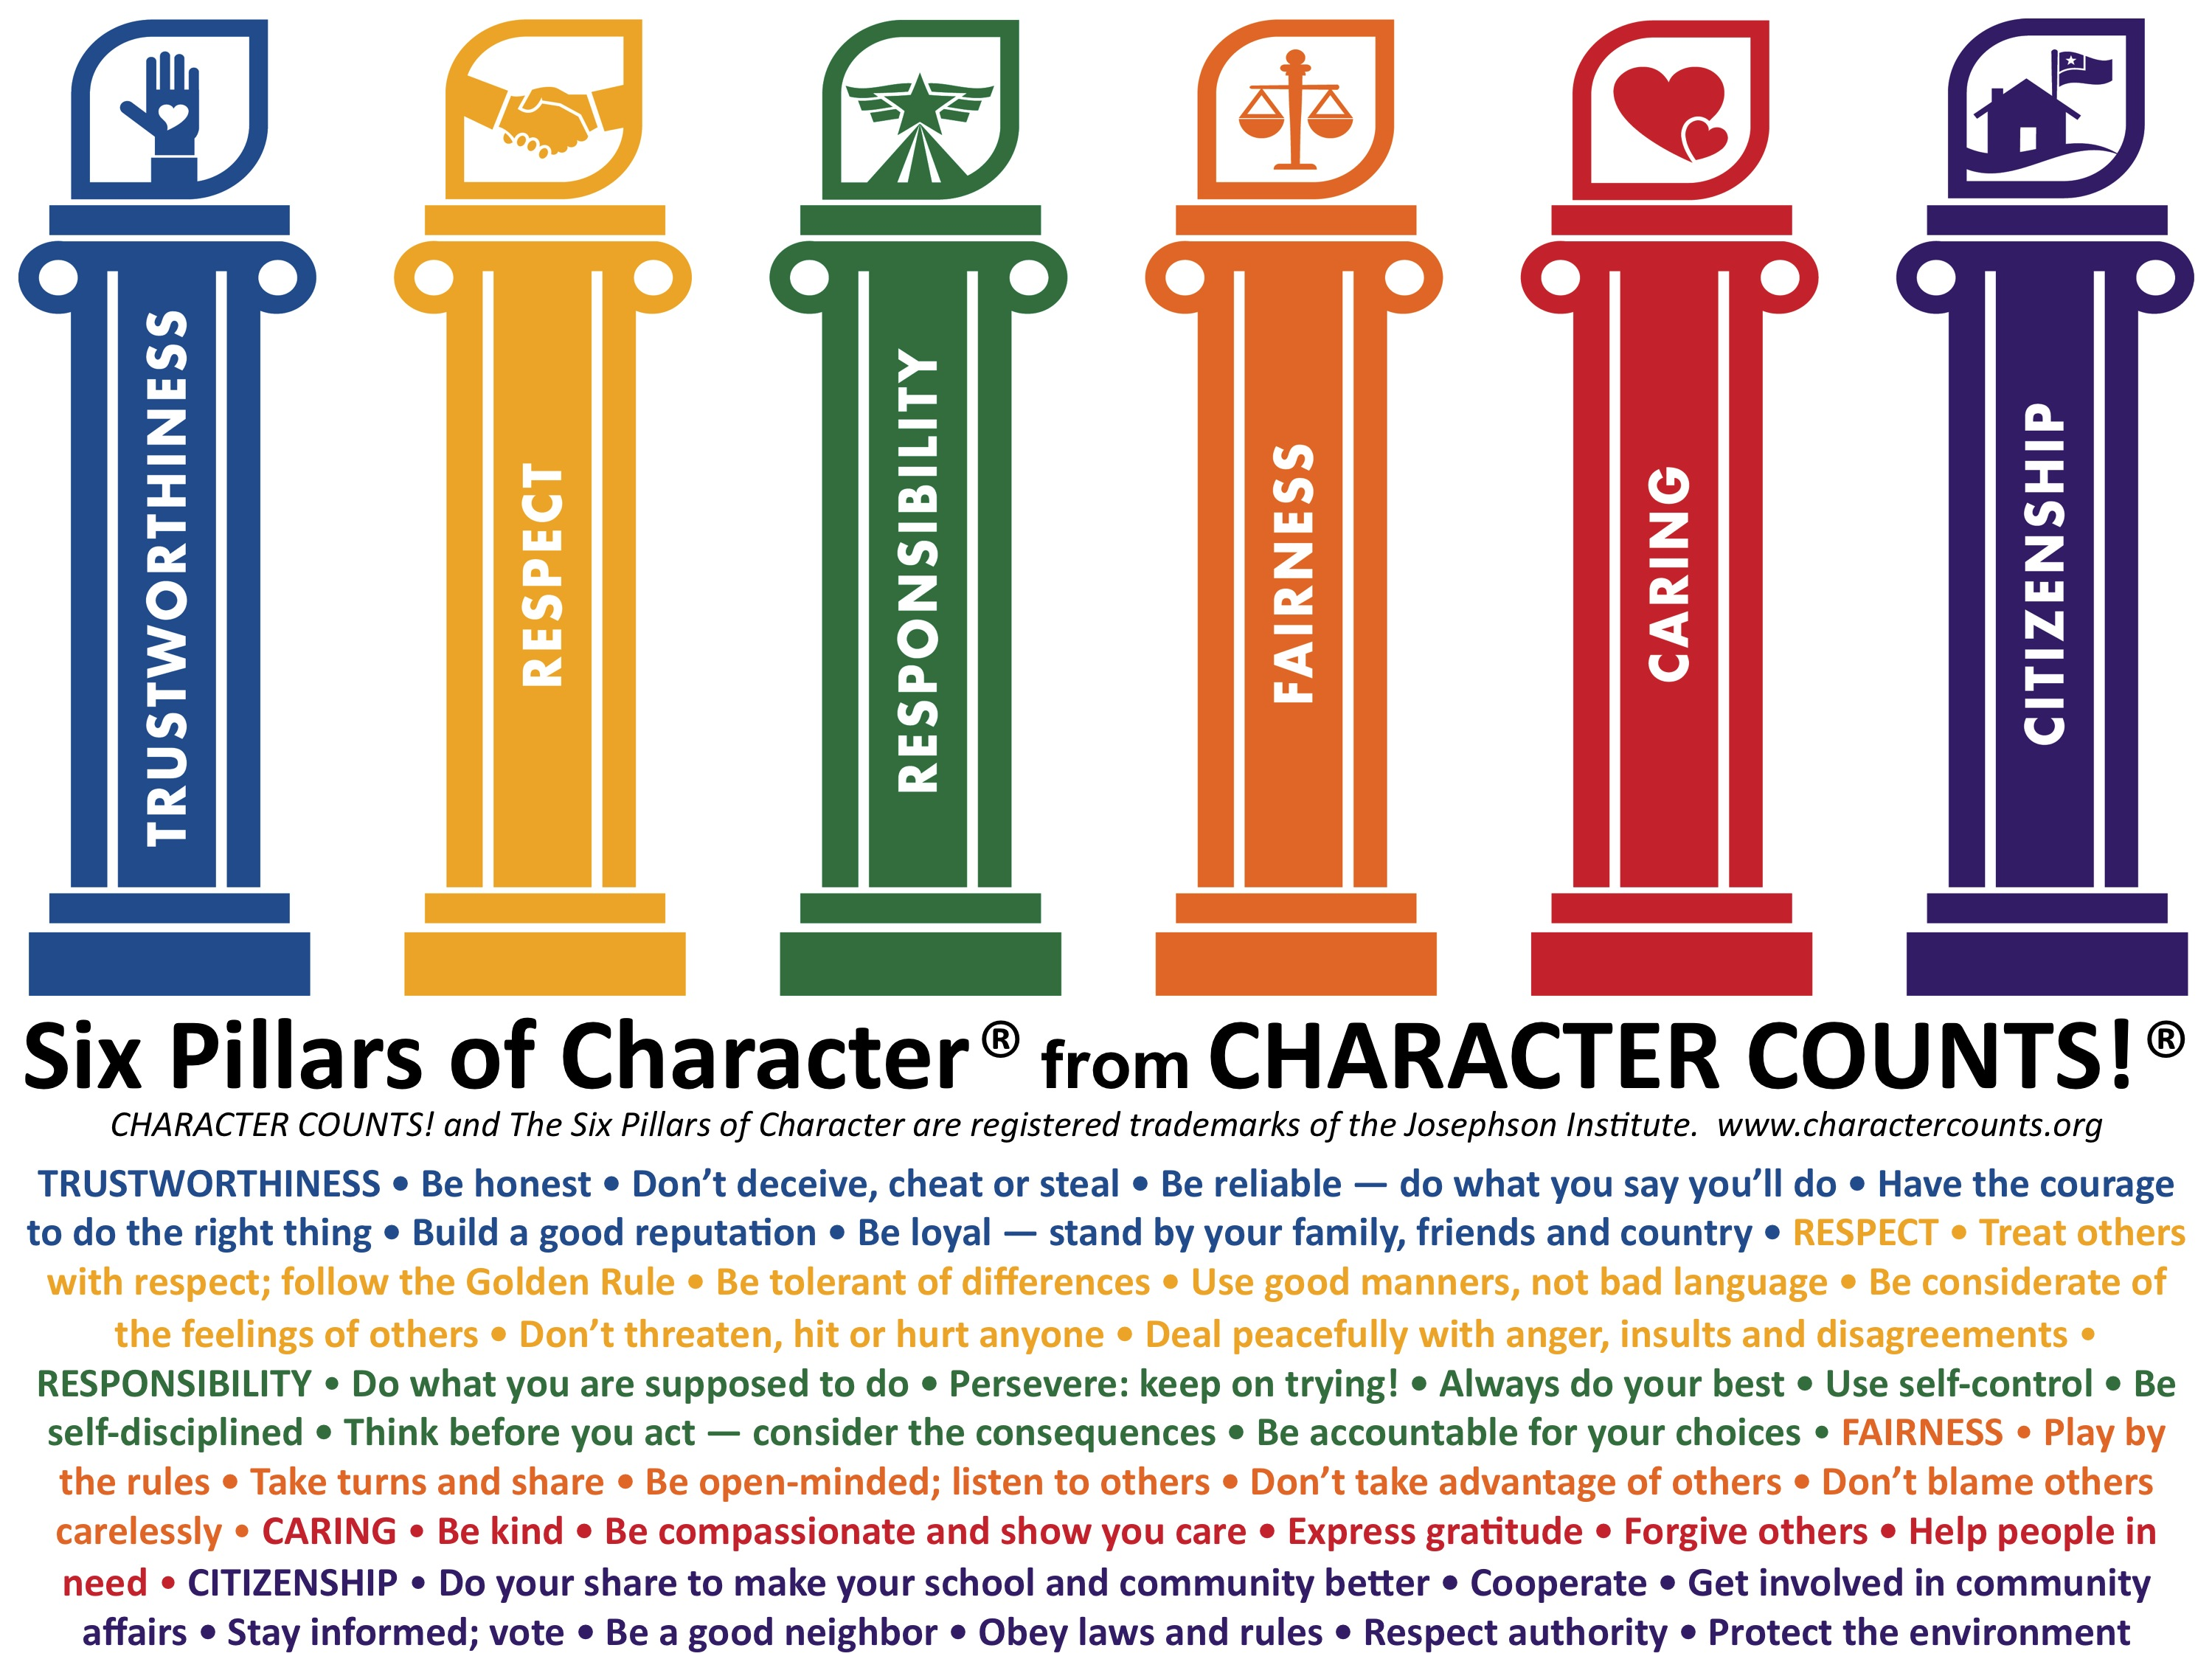 Worksheets Character Counts Worksheets character counts worksheets rupsucks printables mreichert kids 3